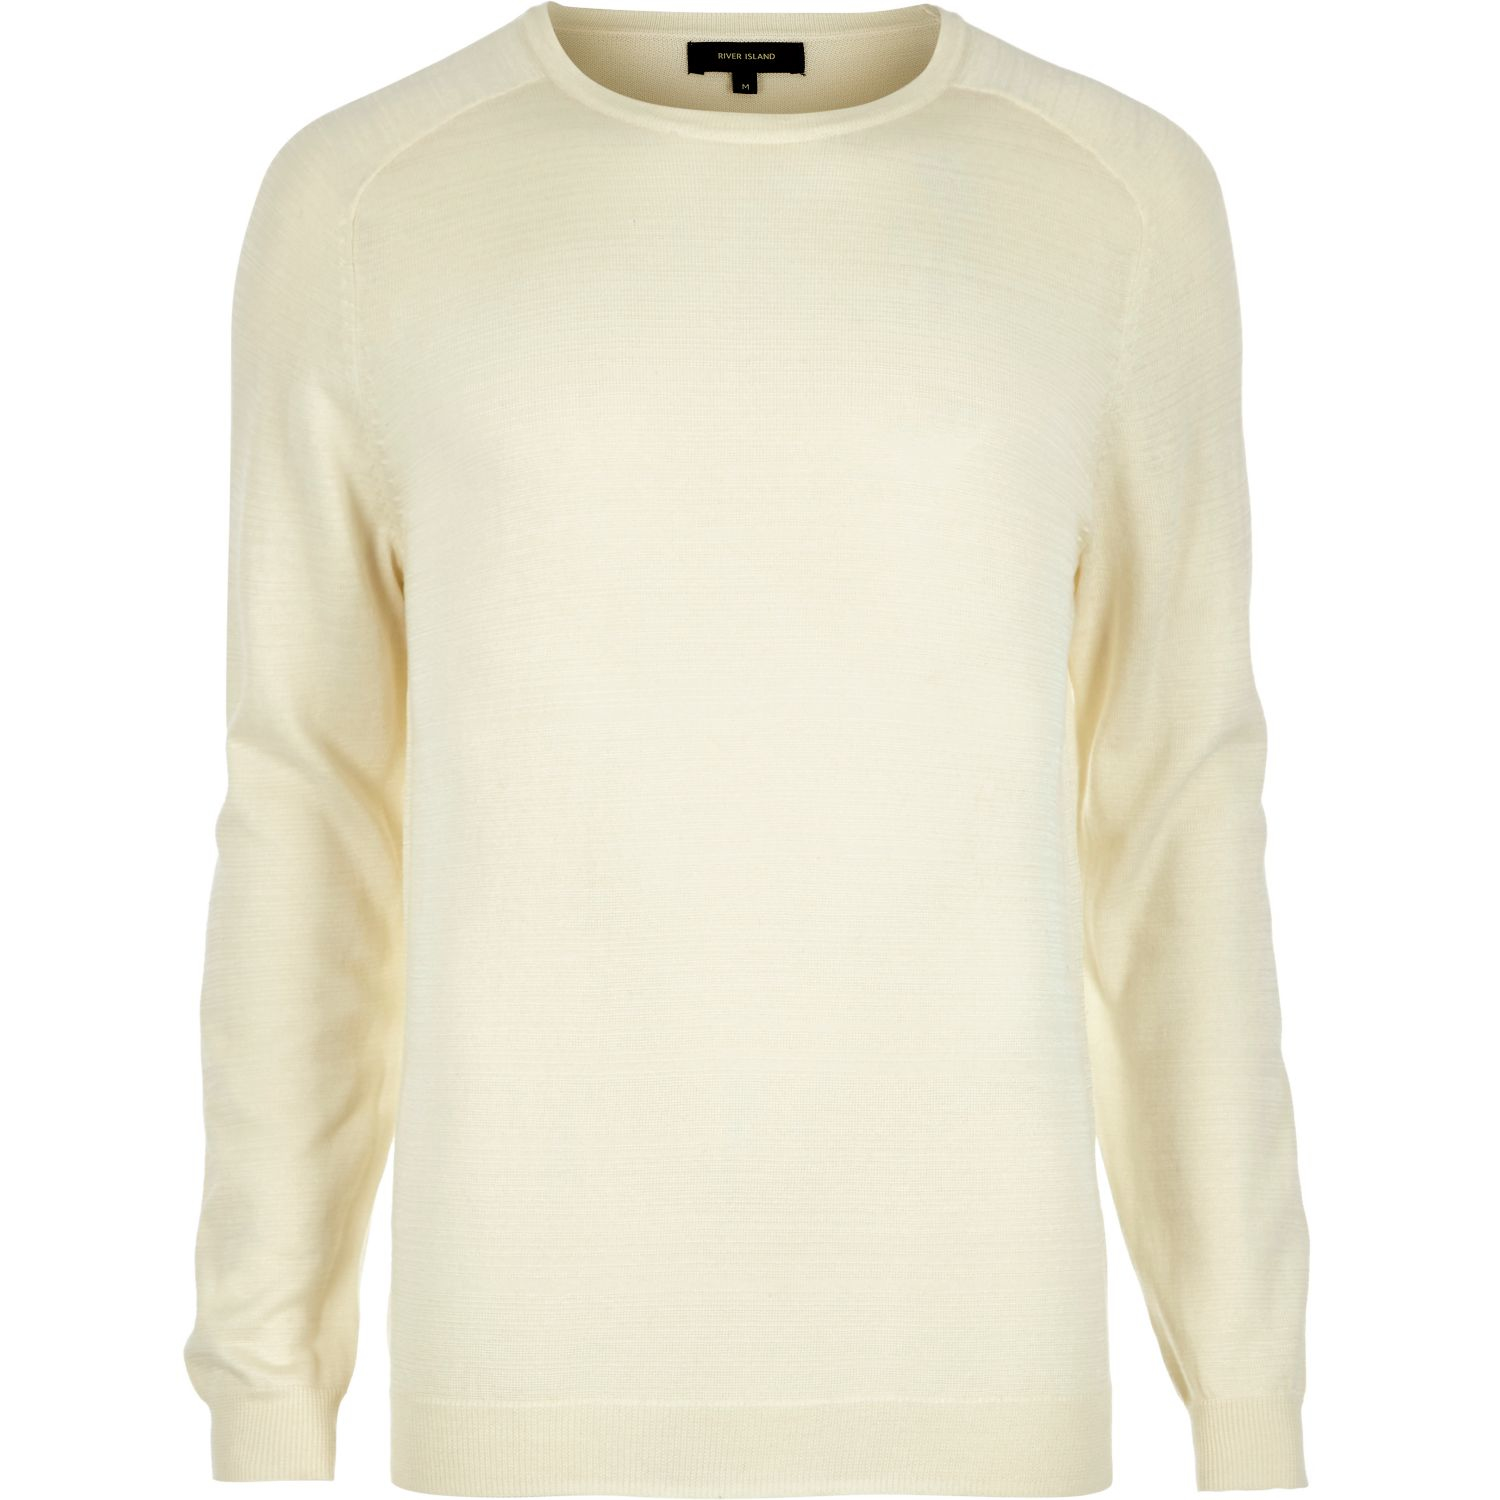 Find cream crew neck sweater at ShopStyle. Shop the latest collection of cream crew neck sweater from the most popular stores - all in one place.